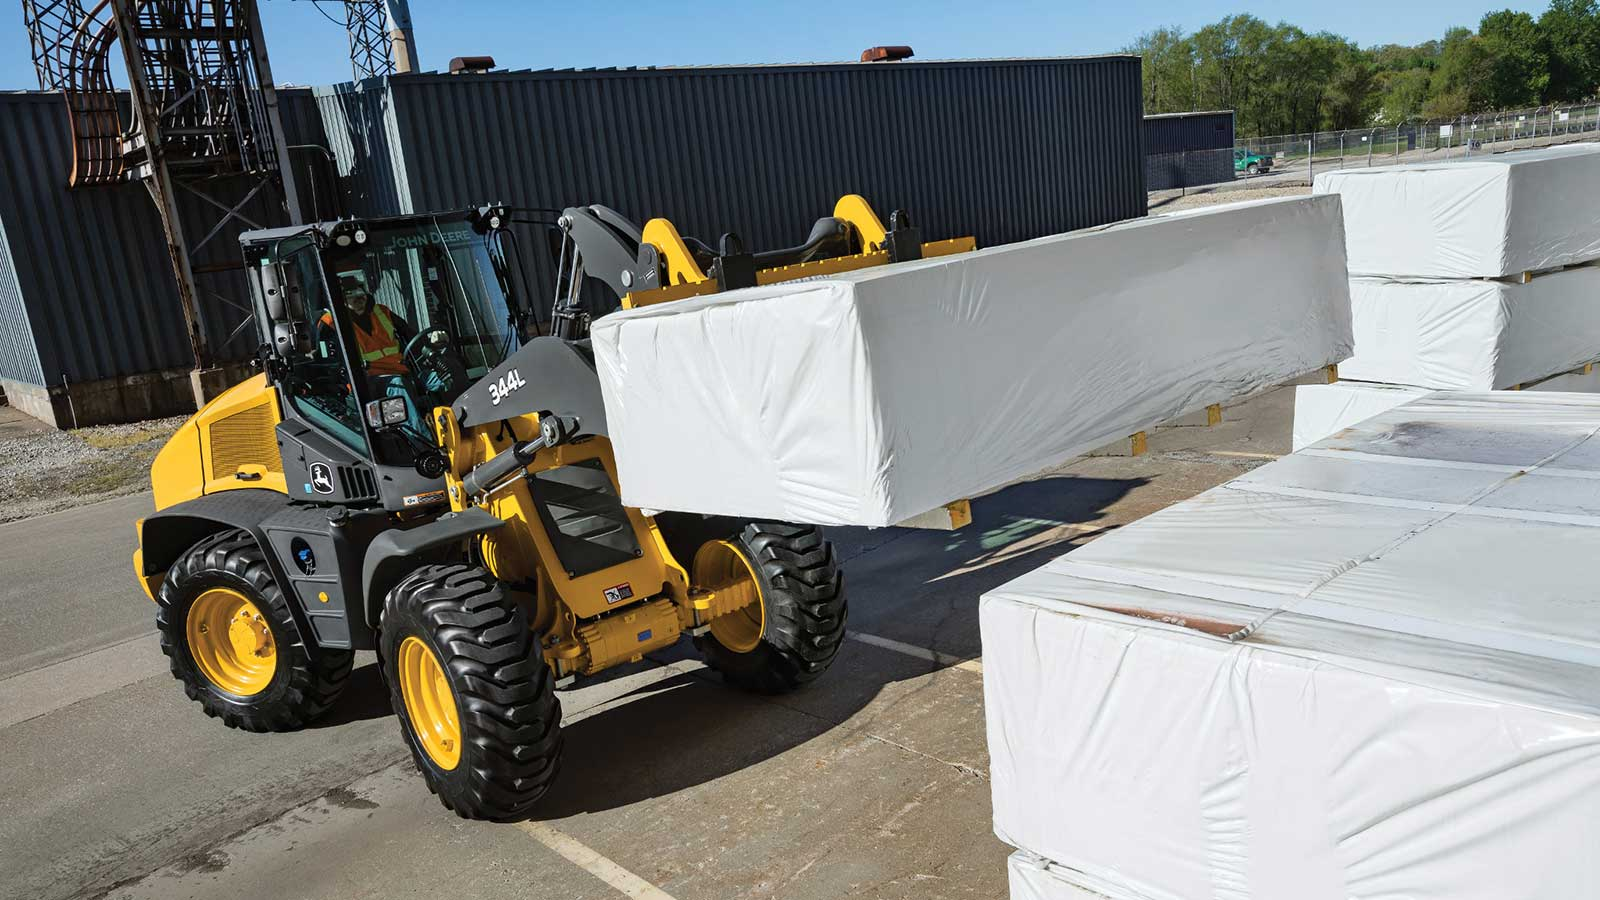 344L Compact Wheel Loader moving pallets